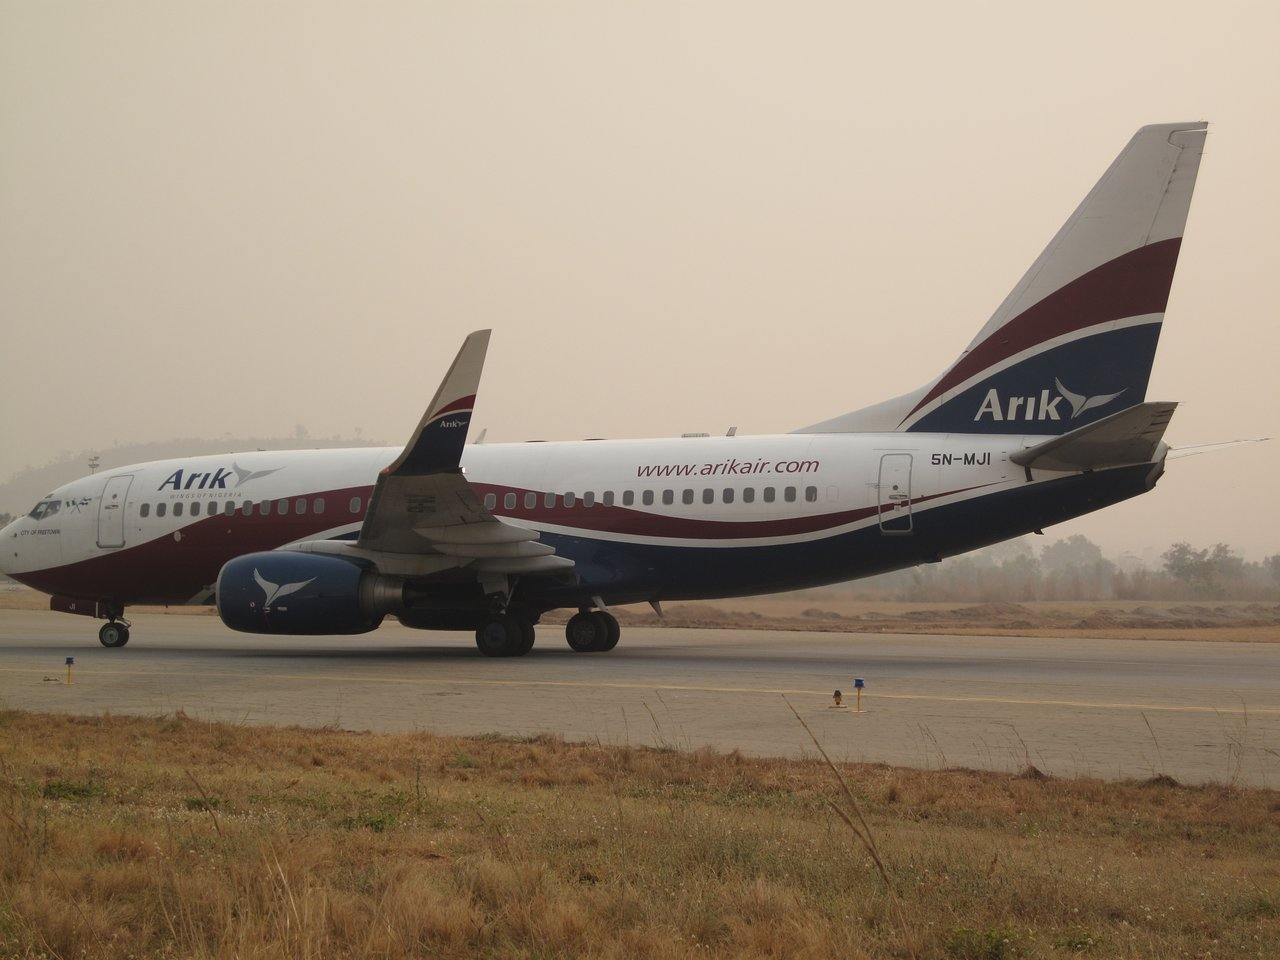 Arik air technical fault